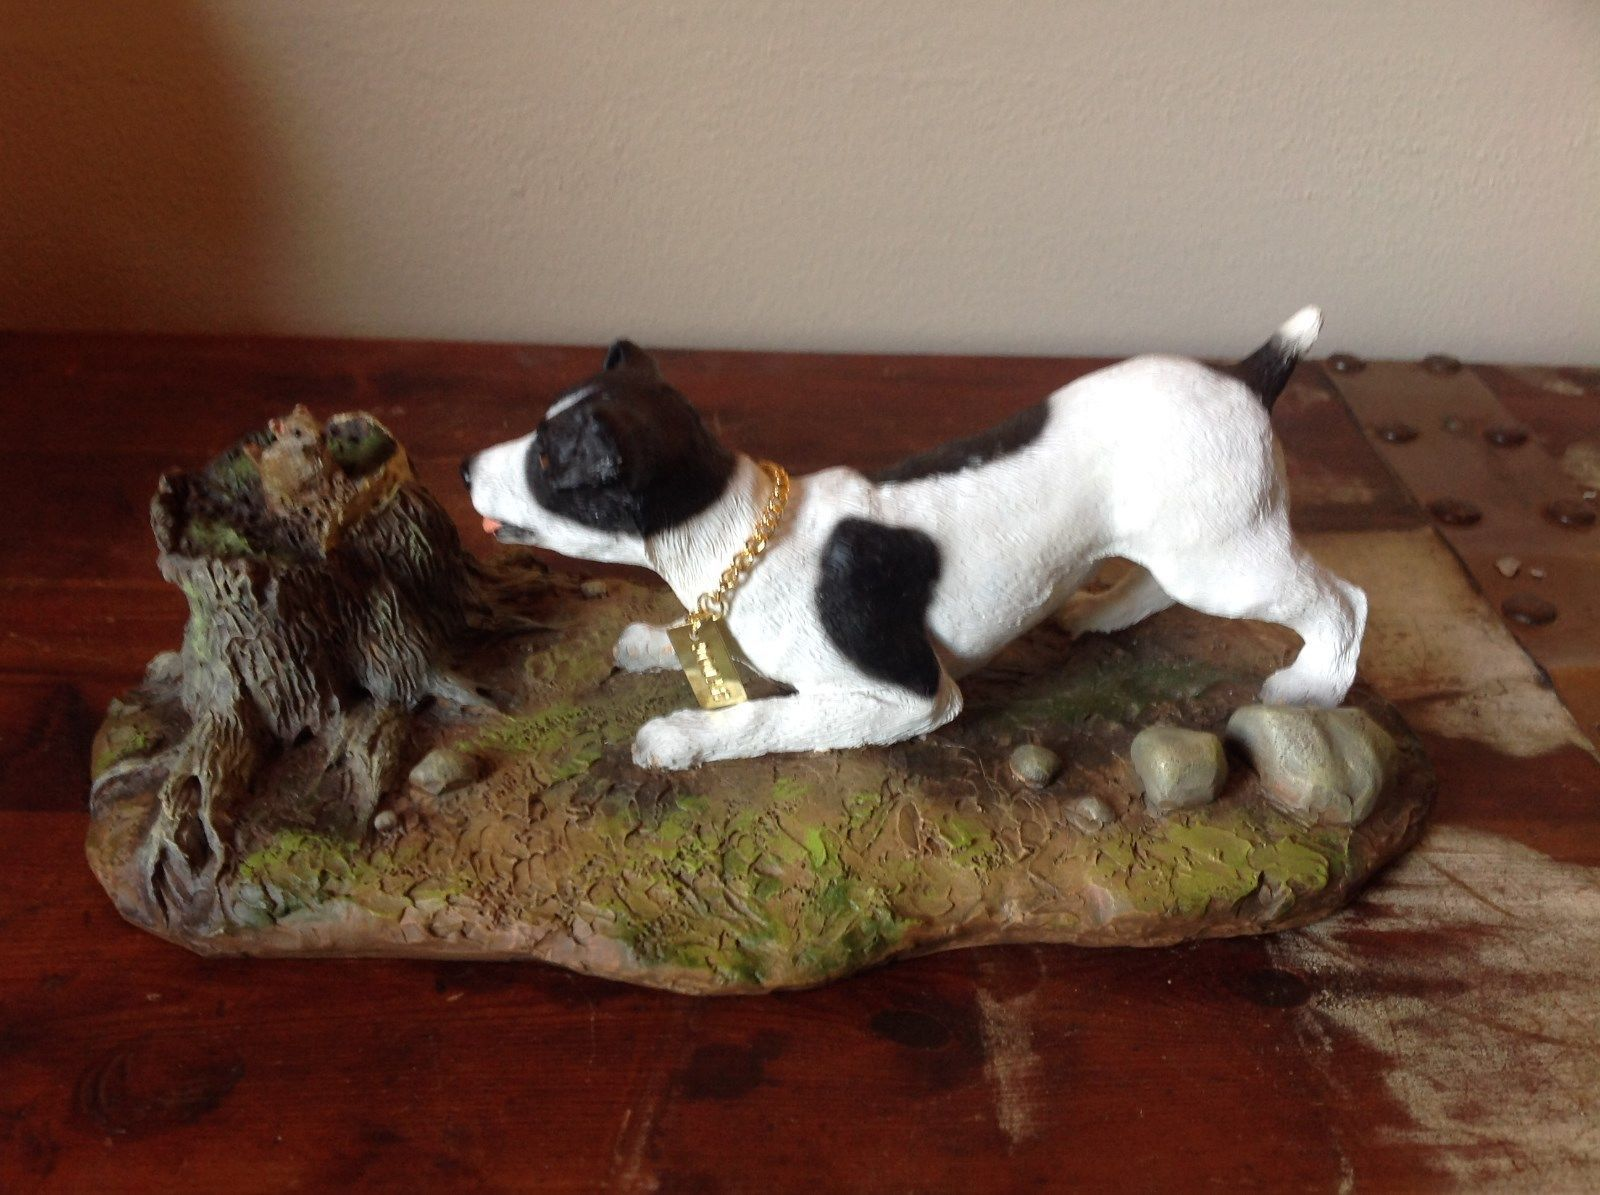 My Dog Figurine Hunting Dog Approaching Chipmunk on Tree Stump Jack Russell ?